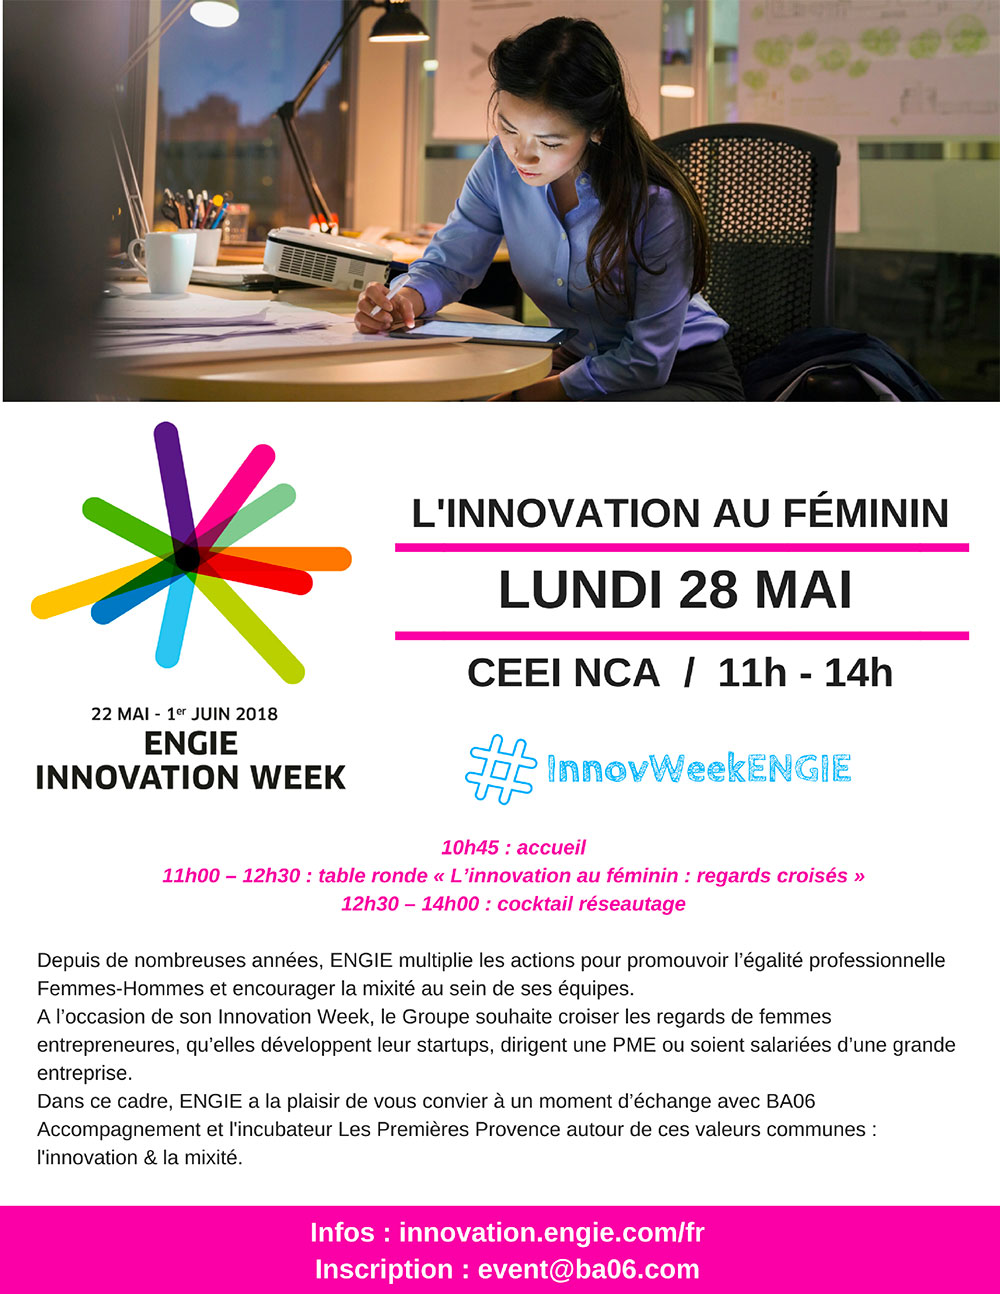 invitation-innovation-week-engie-comp